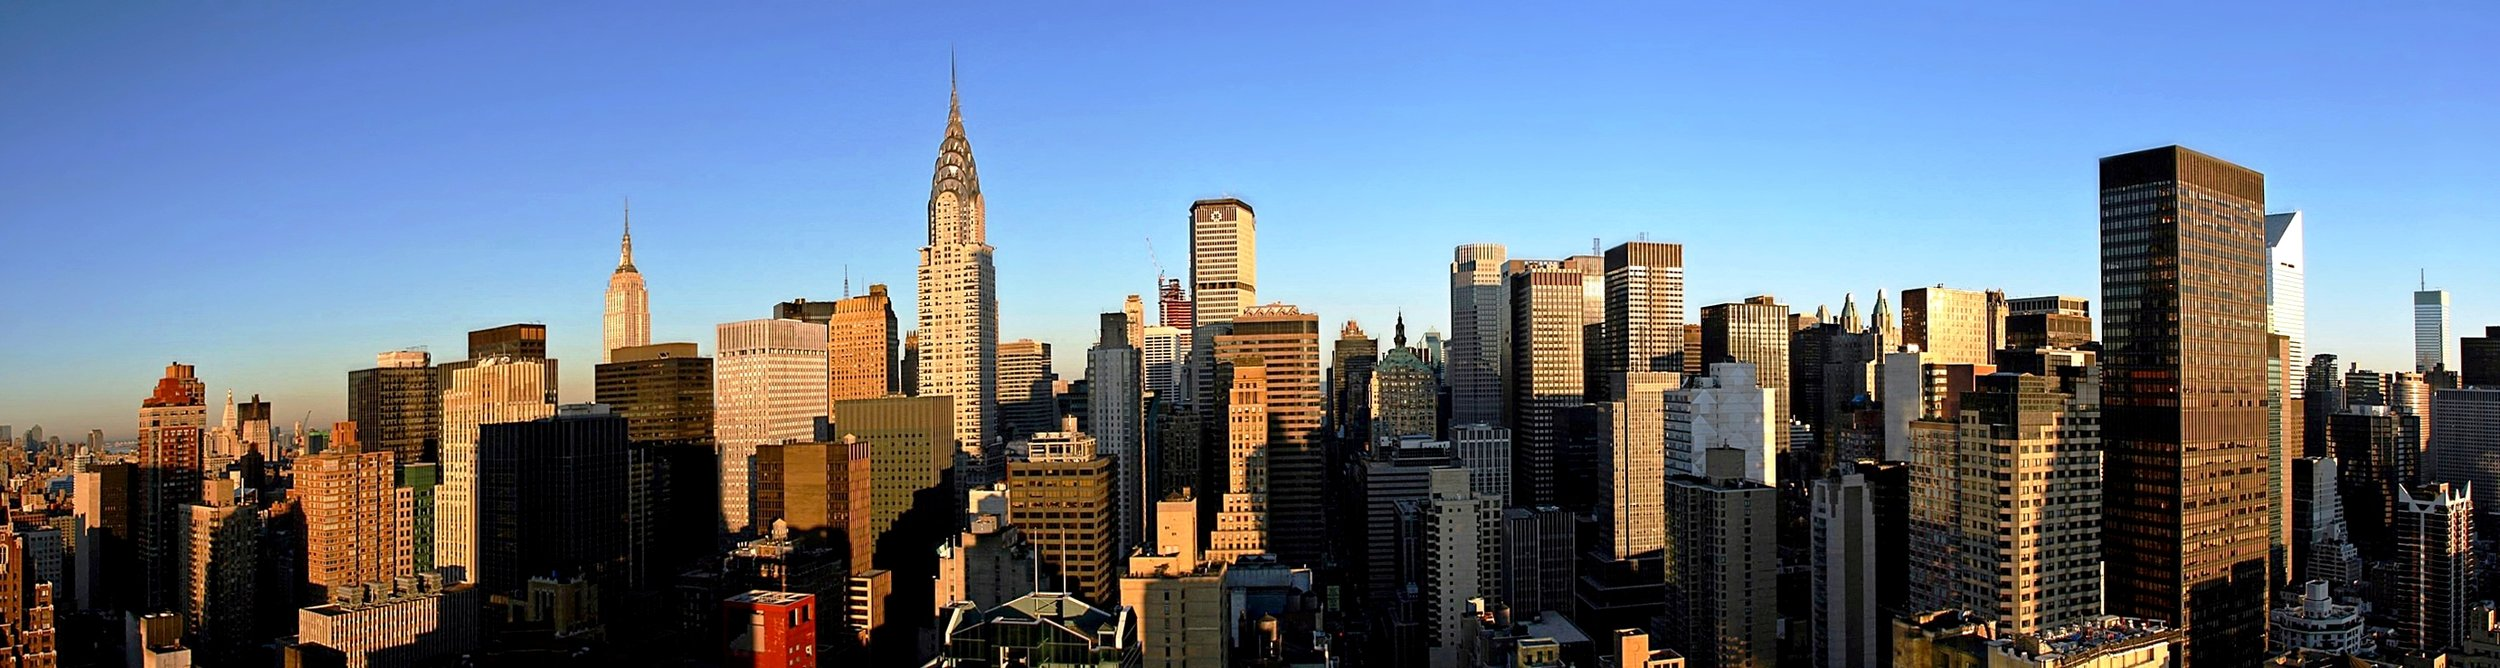 The iconic skyline of lower Manhattan's east side.